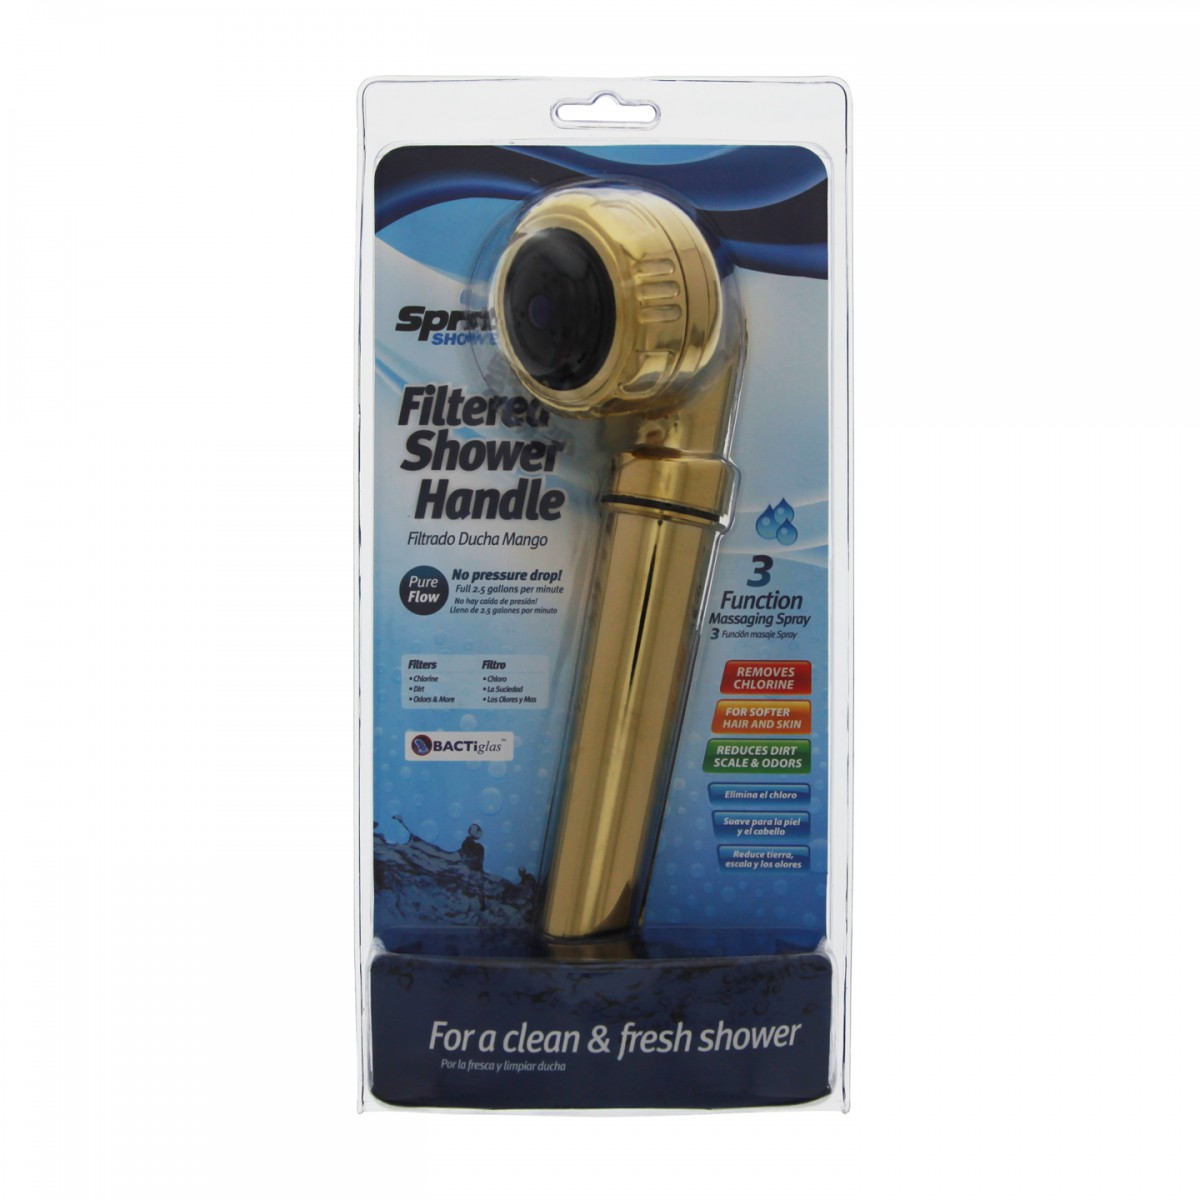 sprite hh gd handheld gold shower filter system. Black Bedroom Furniture Sets. Home Design Ideas